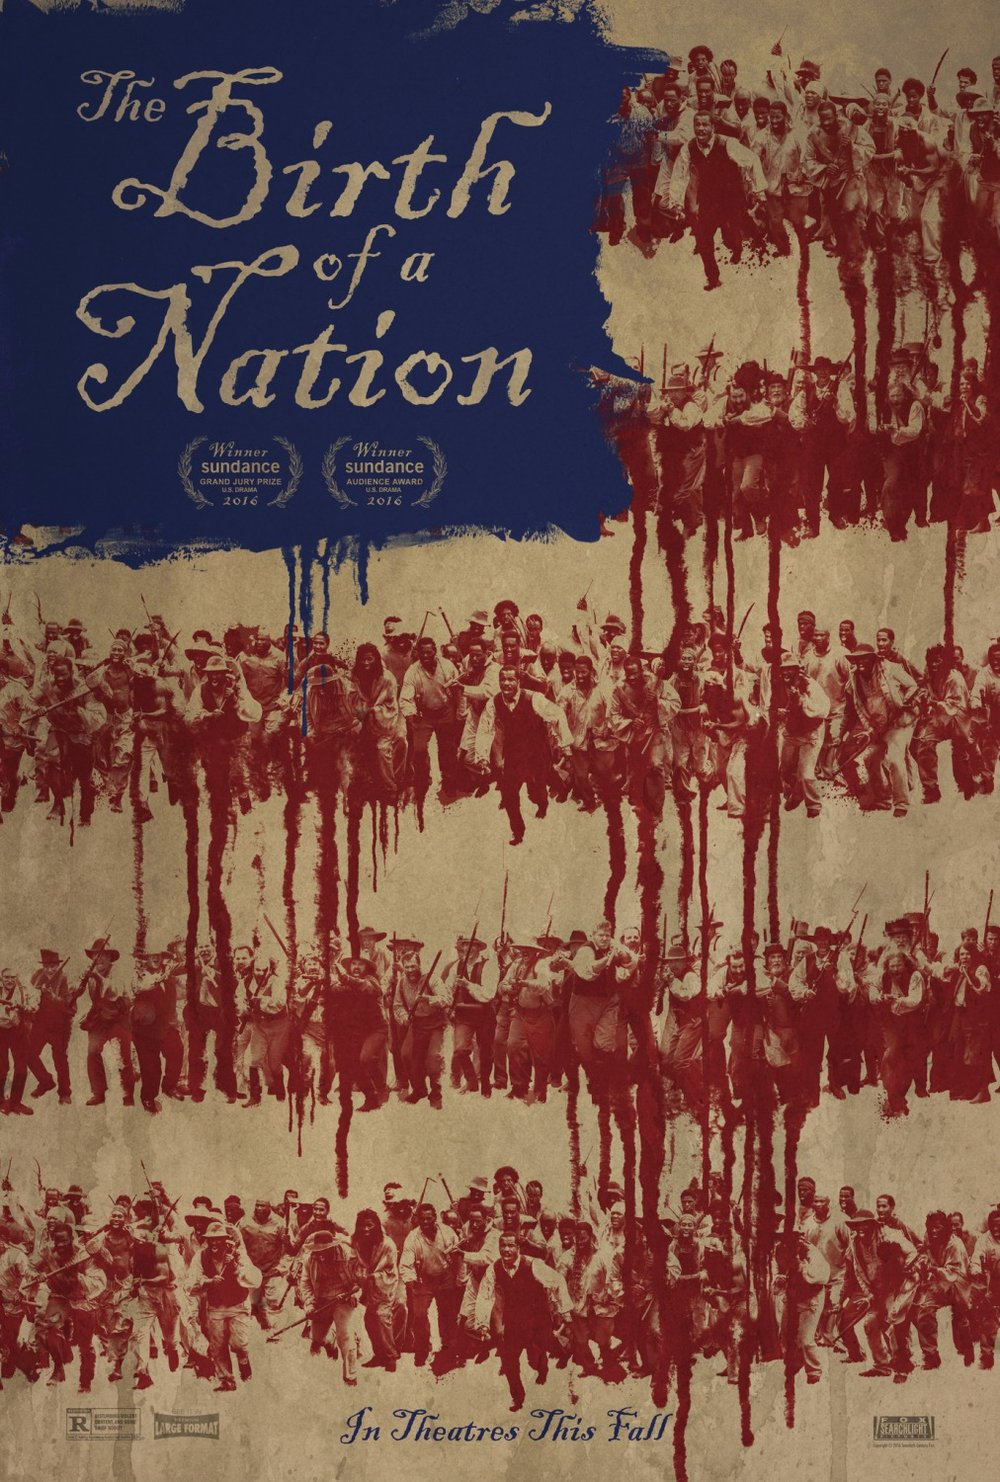 The Birth of a Nation (Artist unknown)